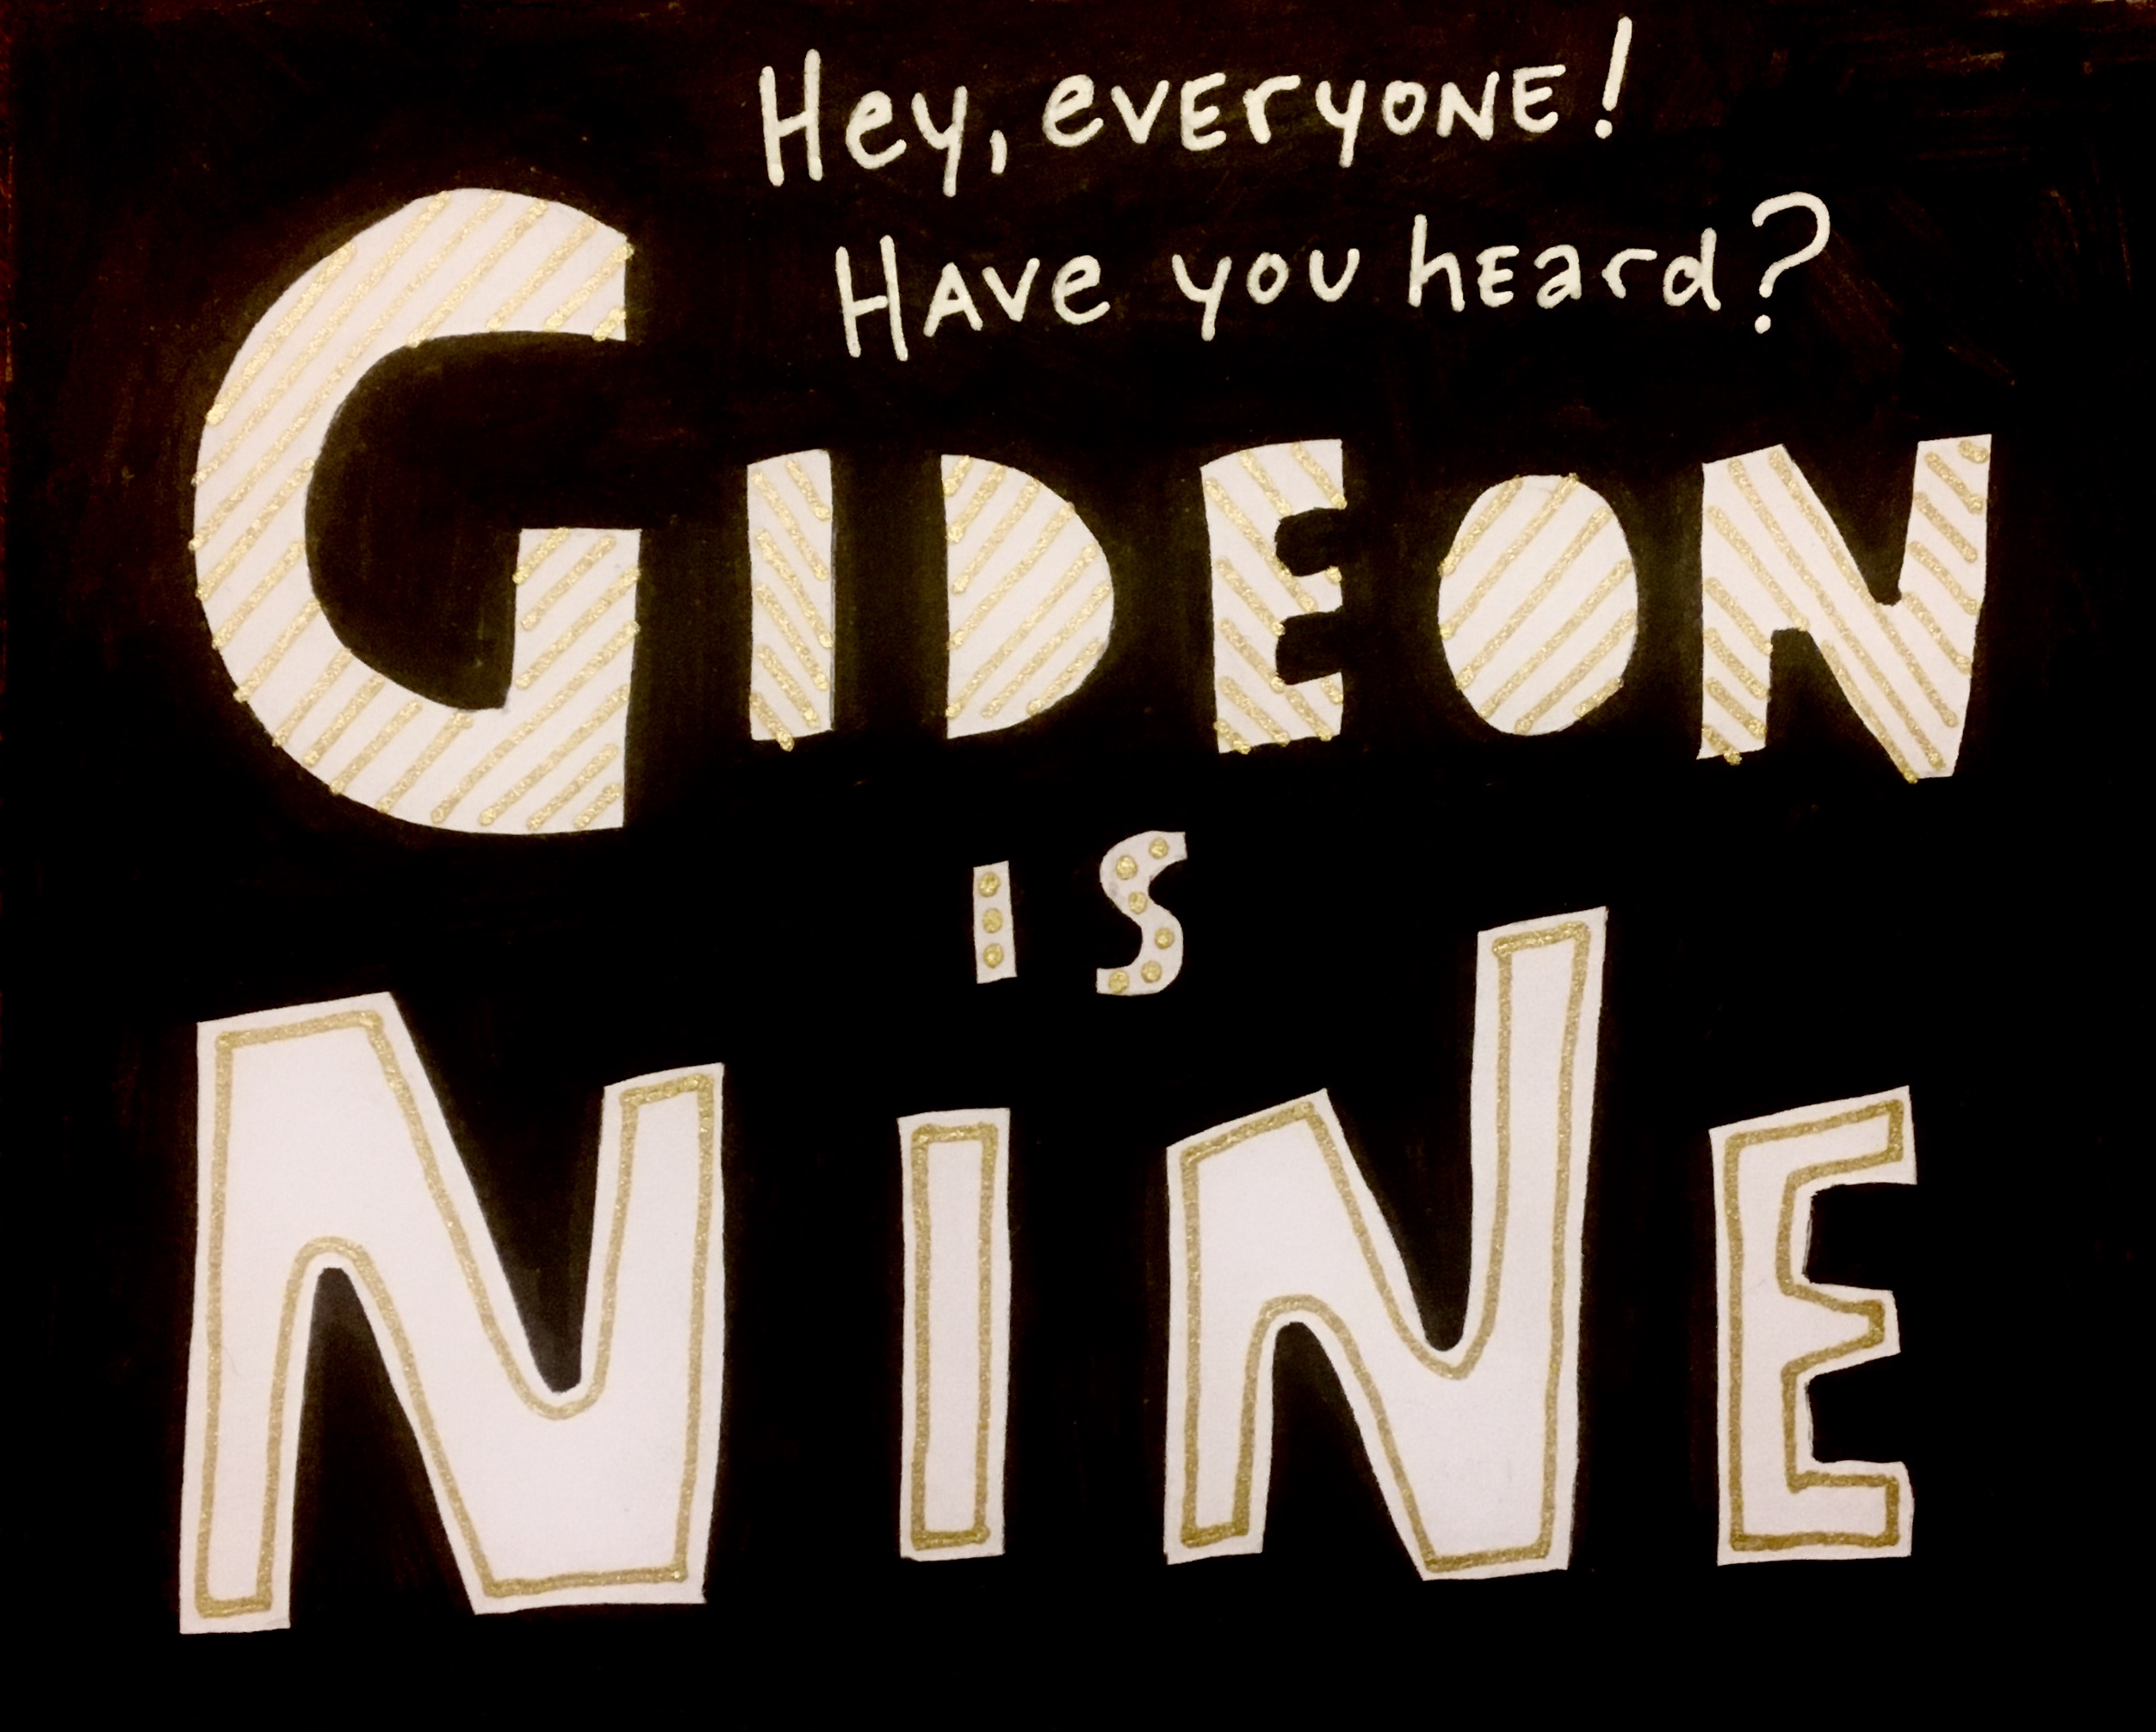 Gideon is Nine!